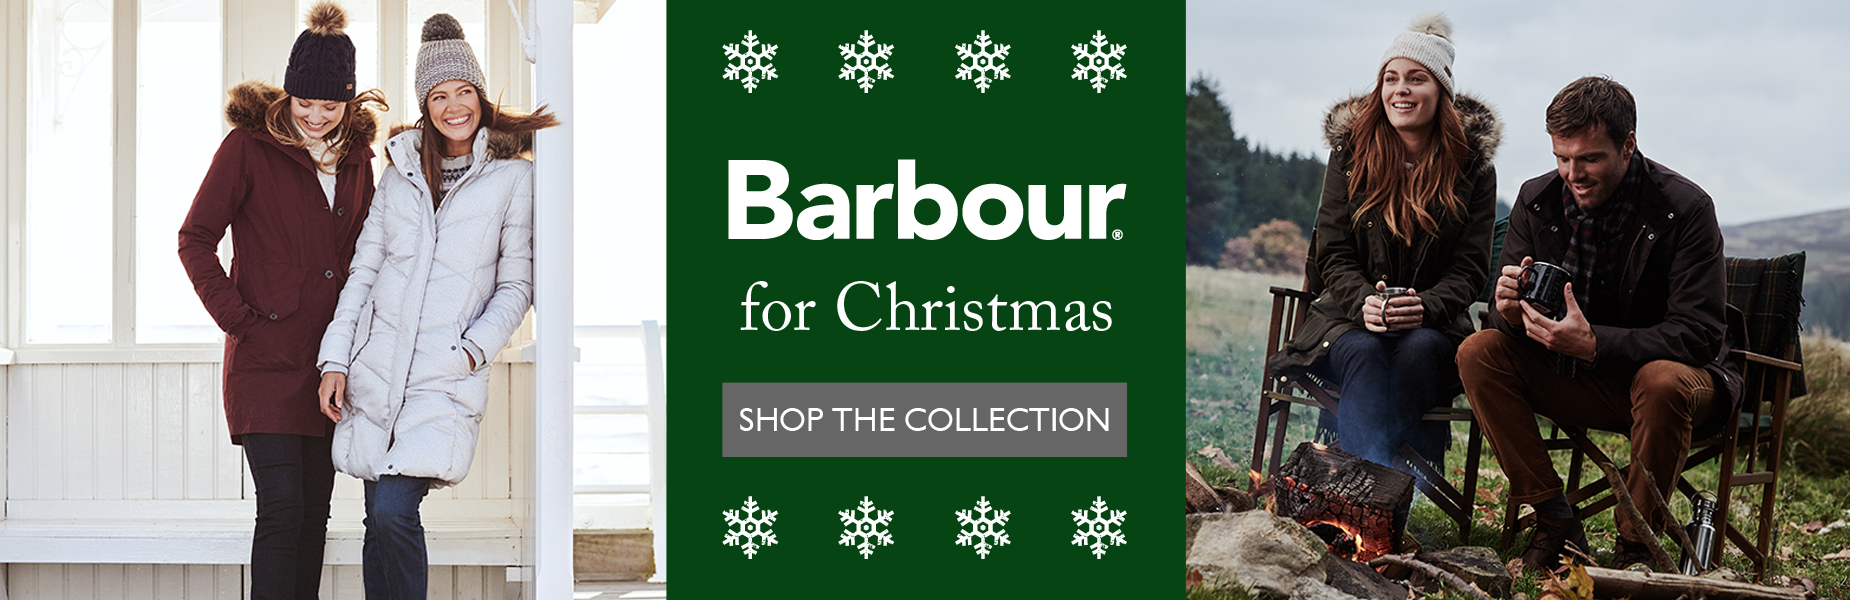 Barbour for Christmas - Shop Now